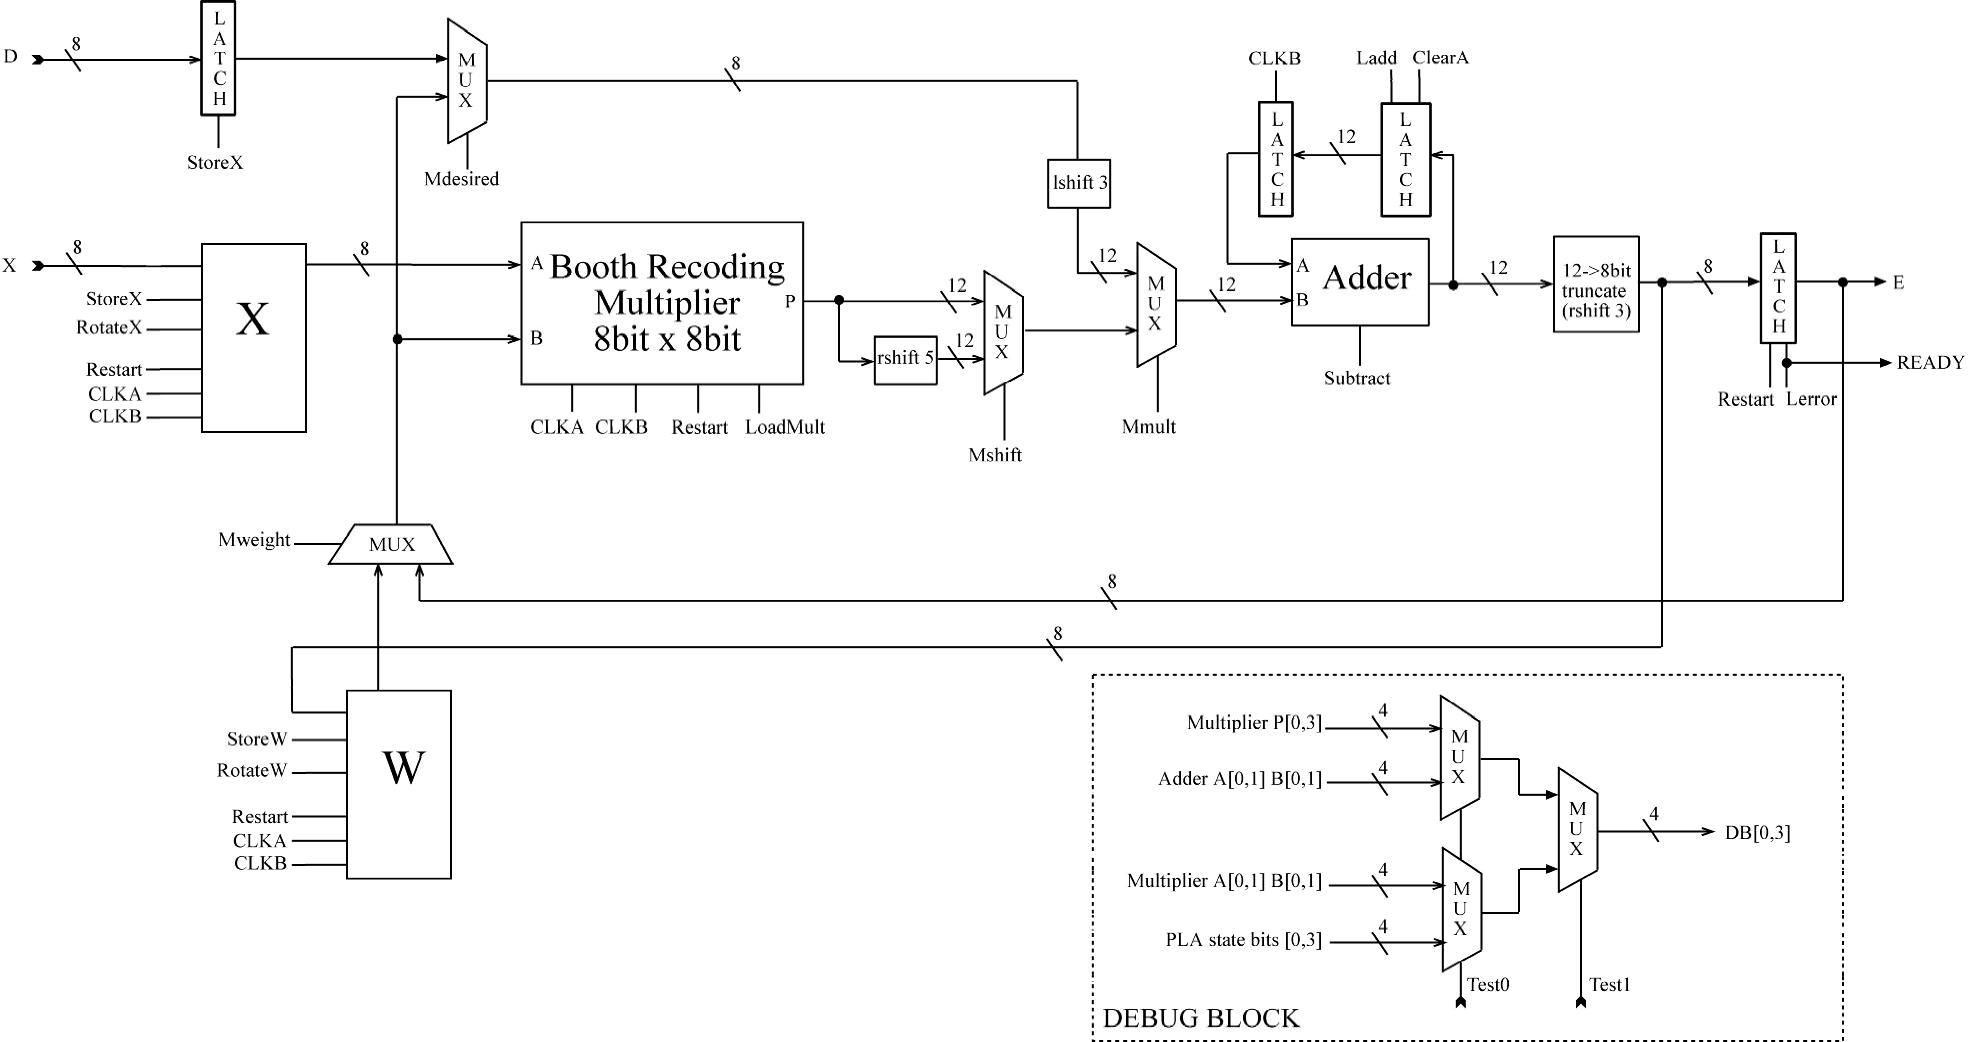 Tremendous Wrg 4948 8 Bit Multiplier Circuit Diagram Wiring Cloud Hisonepsysticxongrecoveryedborg